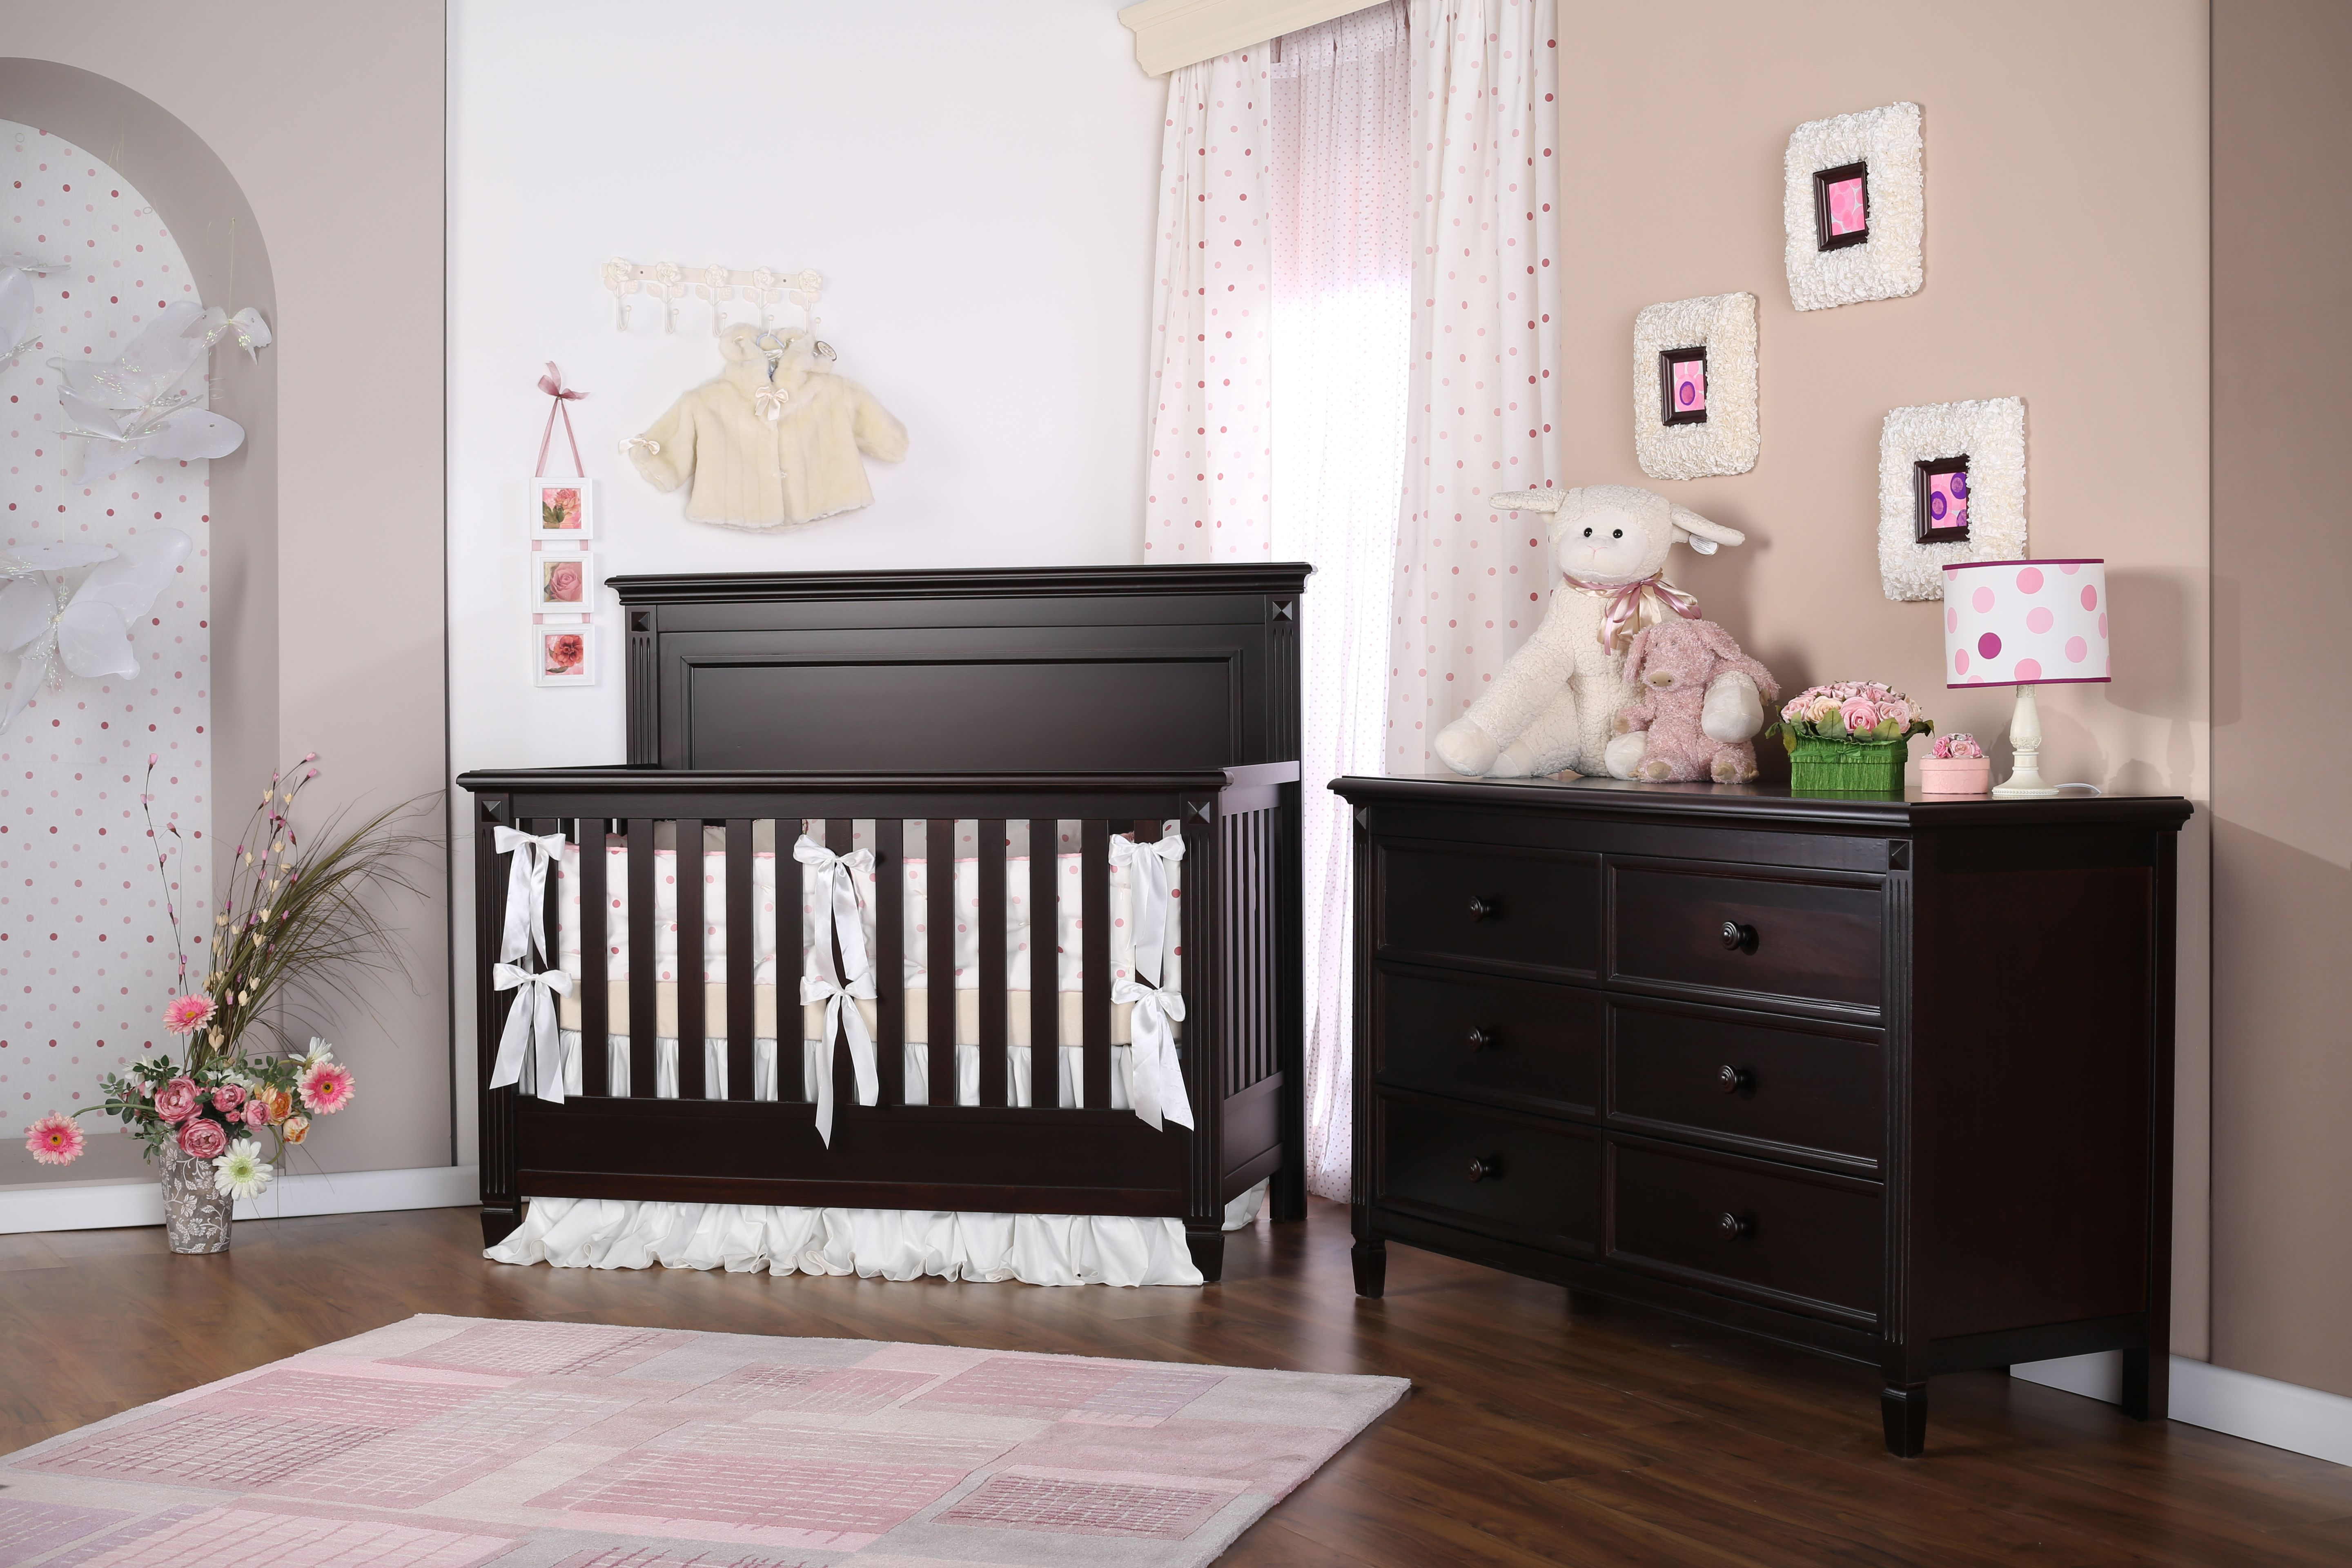 mattress com dark cabinets walmart and in cribs excellent wood convertible side r fixed lauren crib value graco cherry bundle